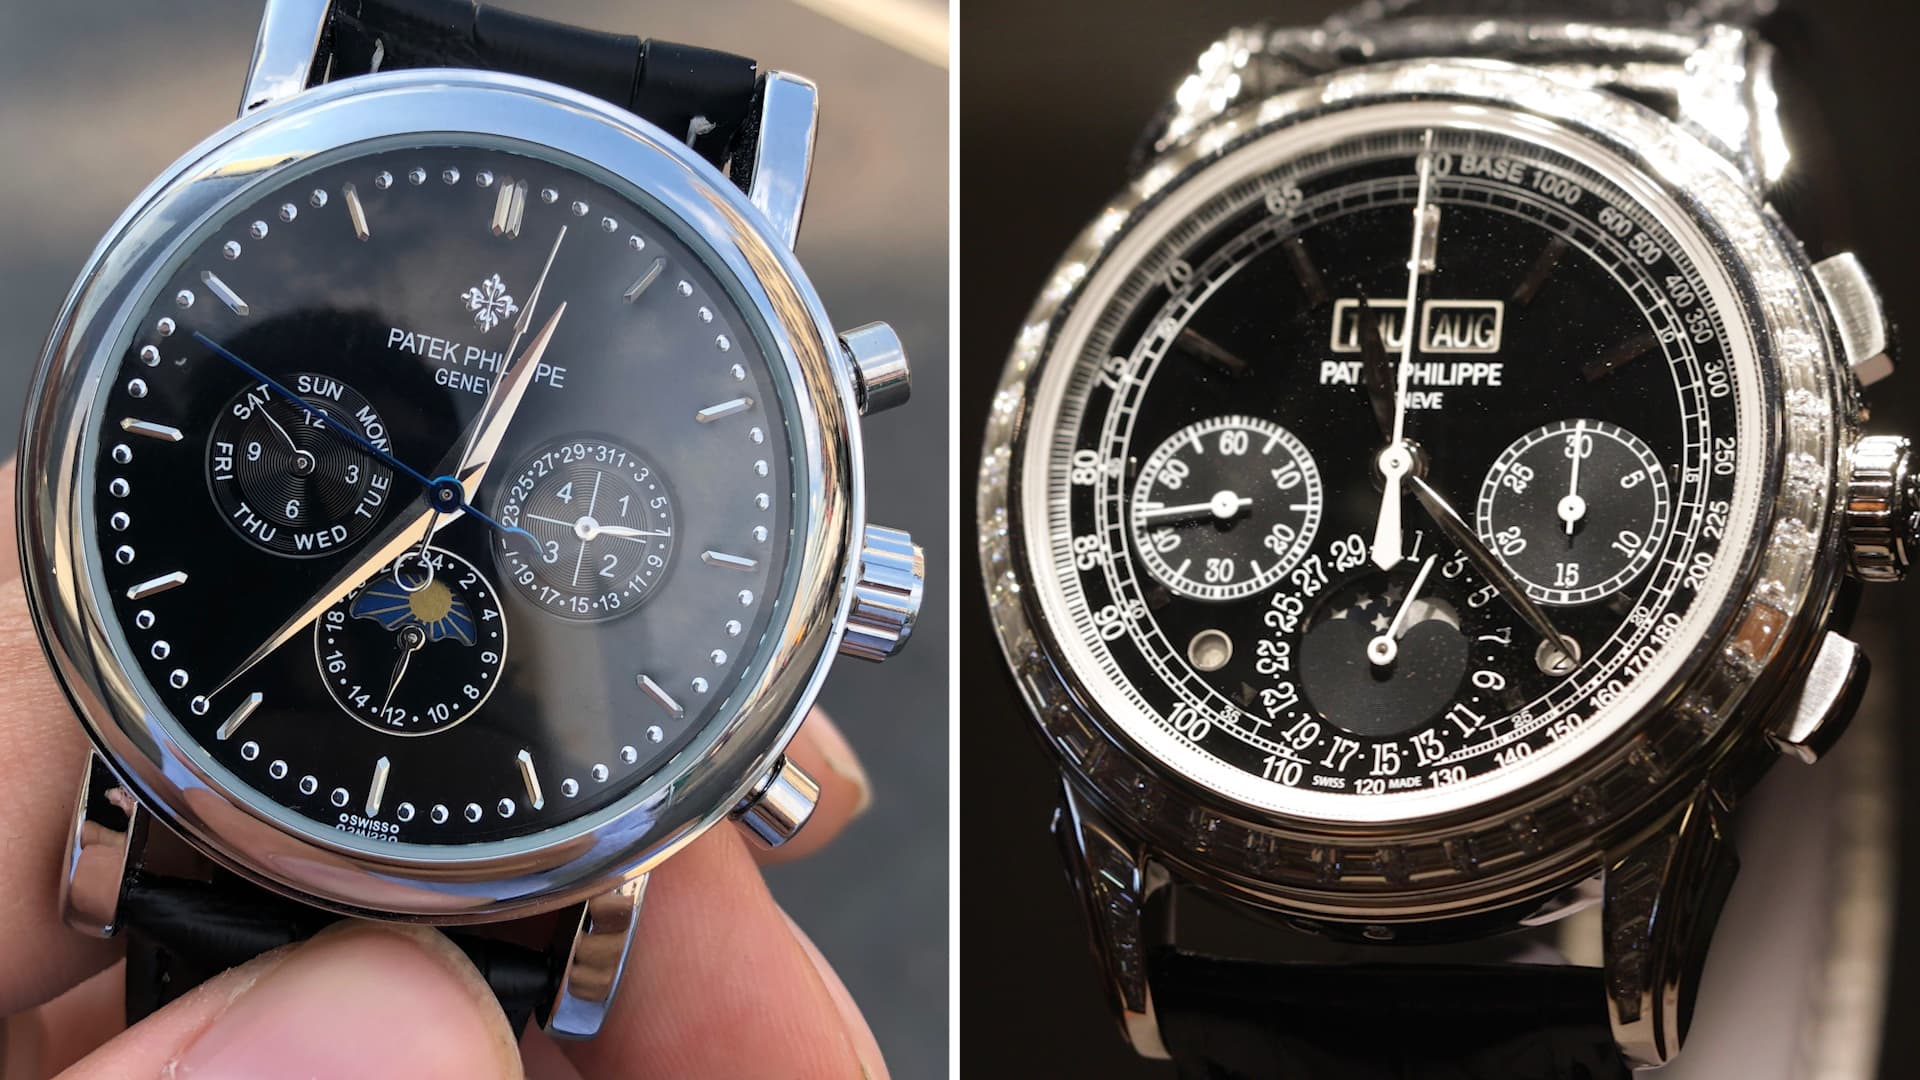 P Philippe Watch I Shopped For A 260 000 Patek Philippe And Compared A 60 Knock Off